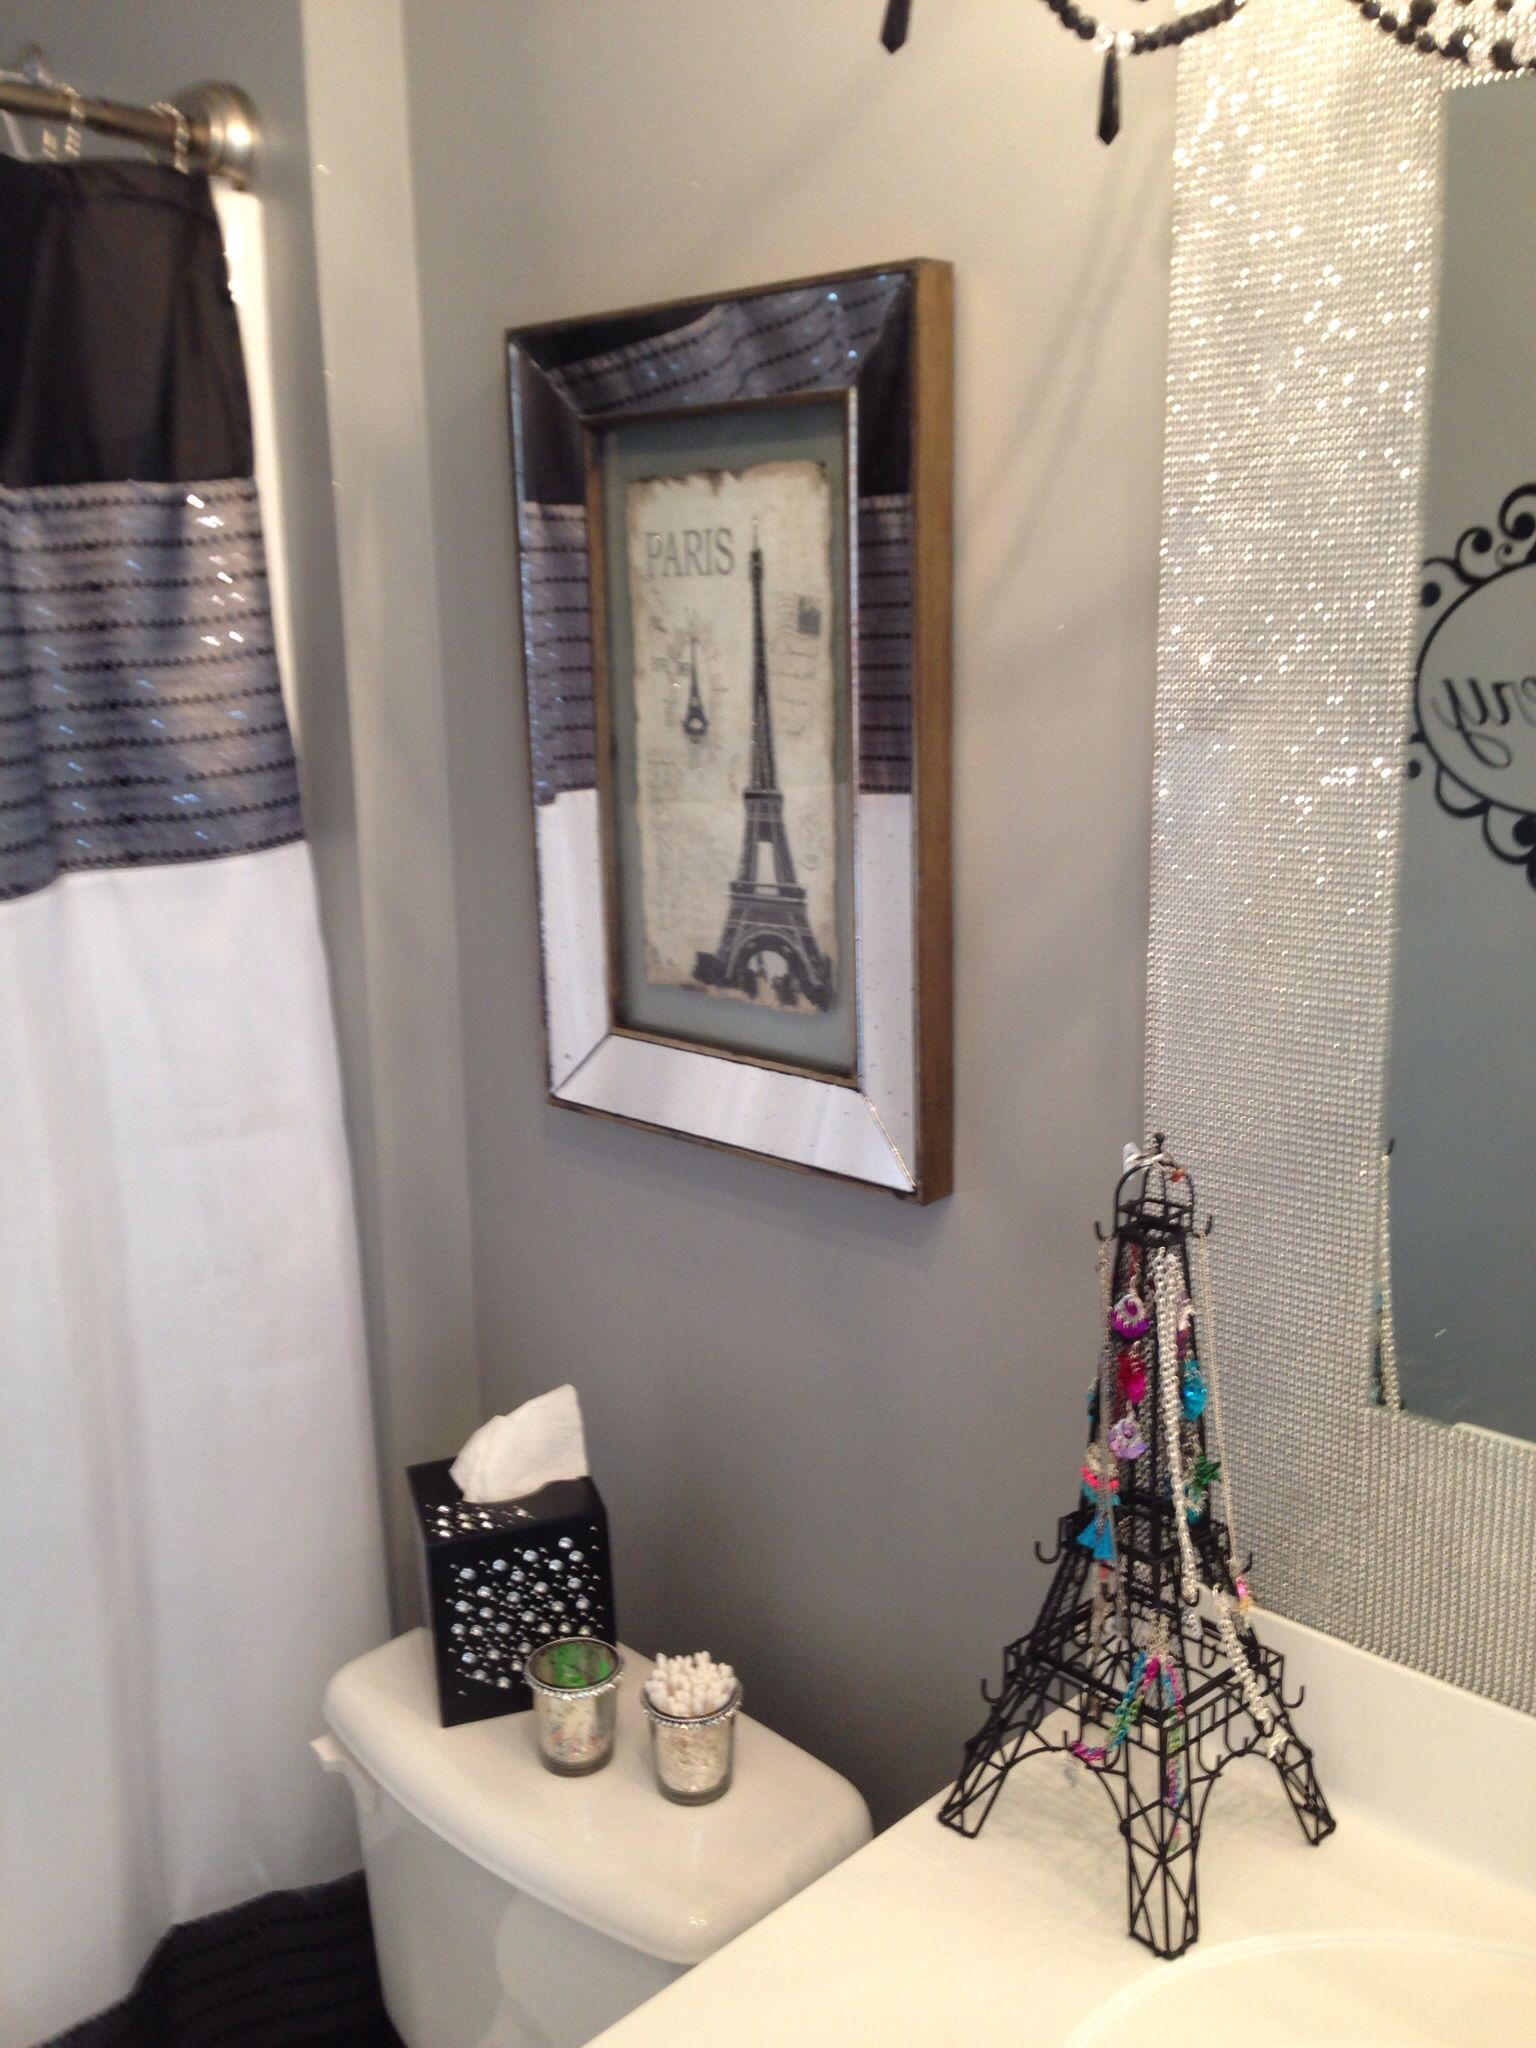 Glitter Painted Walls Valspar Paint With 6 Bags Of Glitter Did My Research And Everyone Said Paris Bathroom Decor Paris Theme Bathroom Paris Themed Bedroom